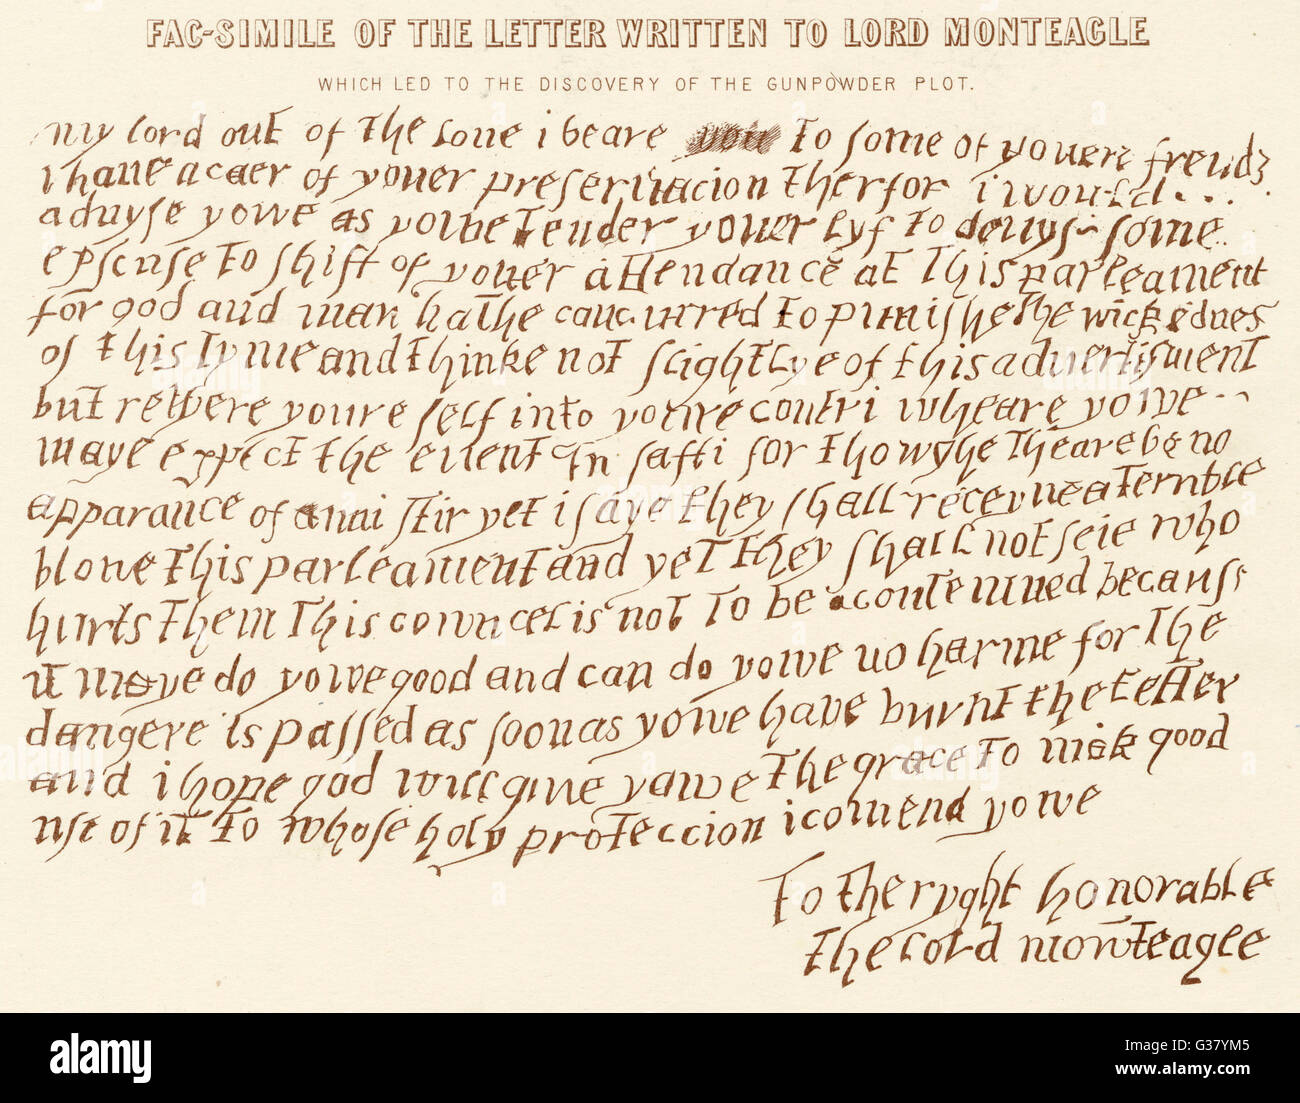 Anonymous letter sent to Lord Monteagle warning him not to